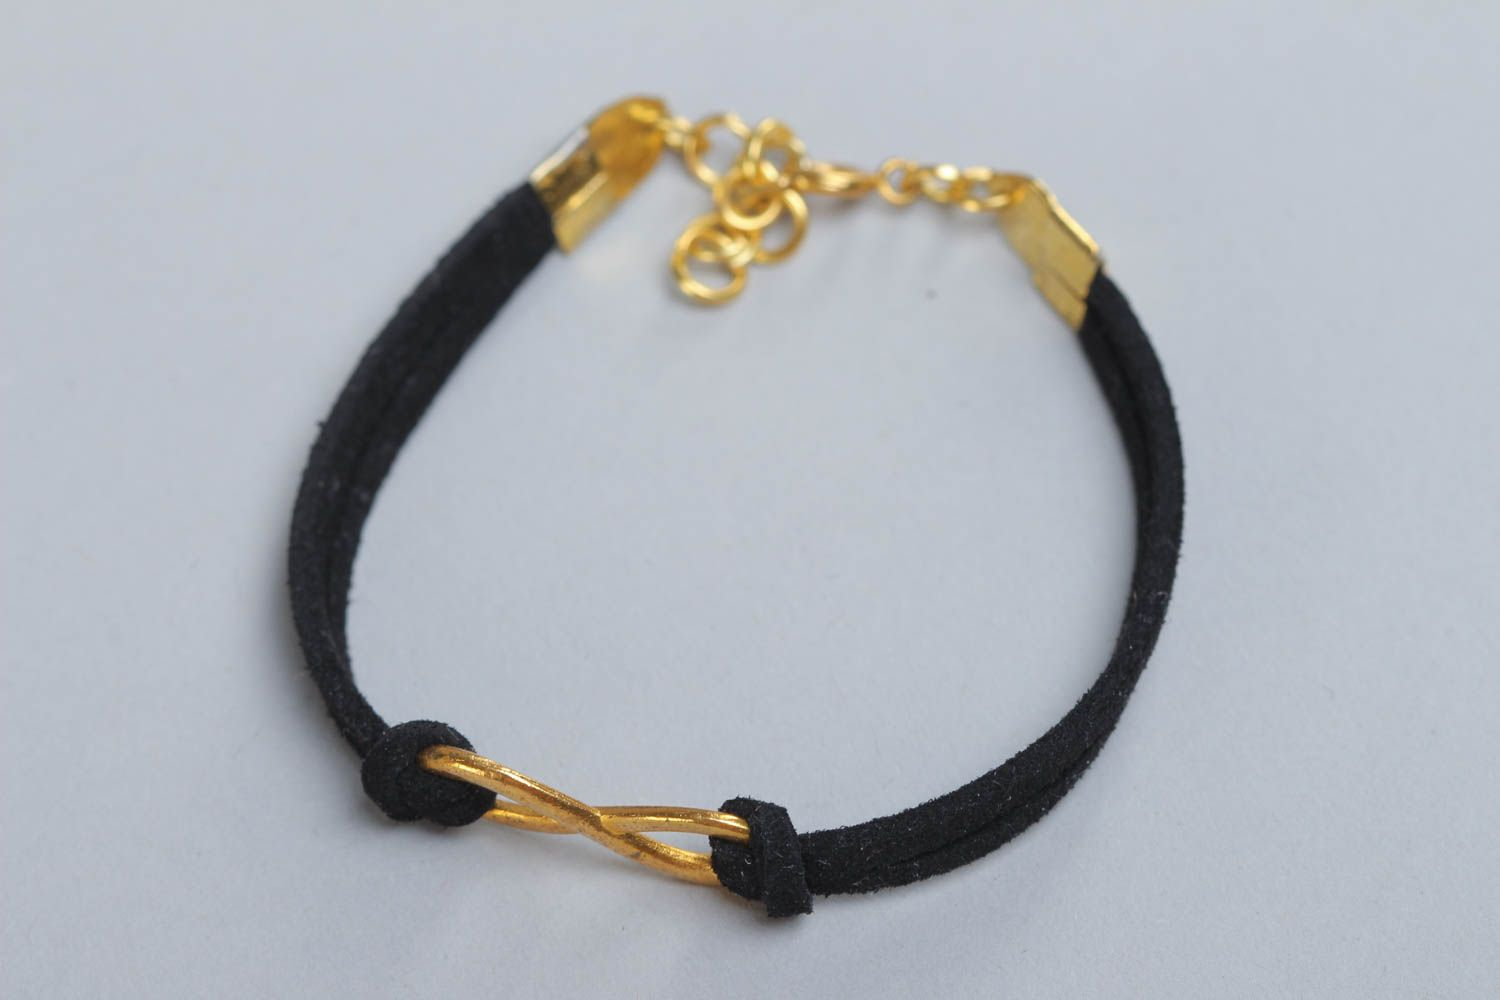 charm bracelets Beautiful festive handmade woven suede cord bracelet of black color with charm - MADEheart.com